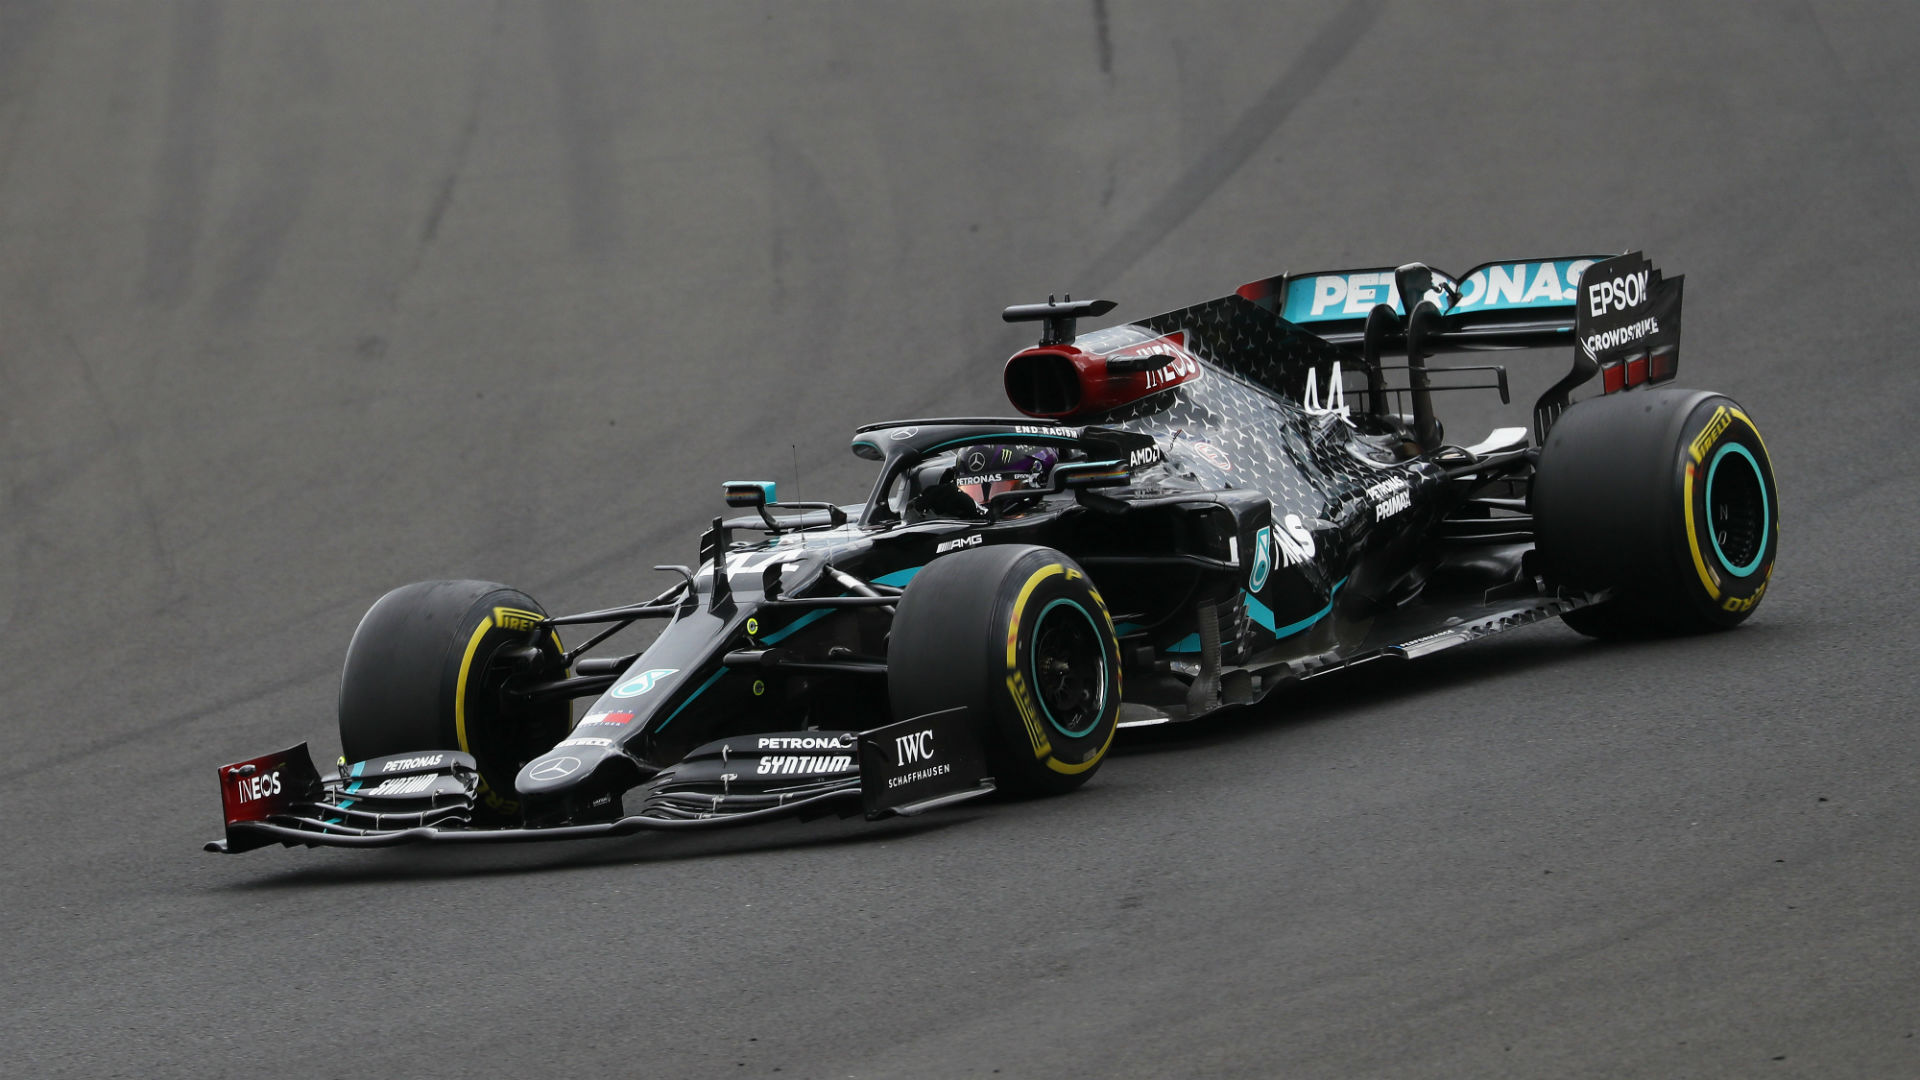 F1 2020 My Driver Career - Sivu 3 Lewishamilton-cropped_fm60zxam56l31do528pdwm3qt